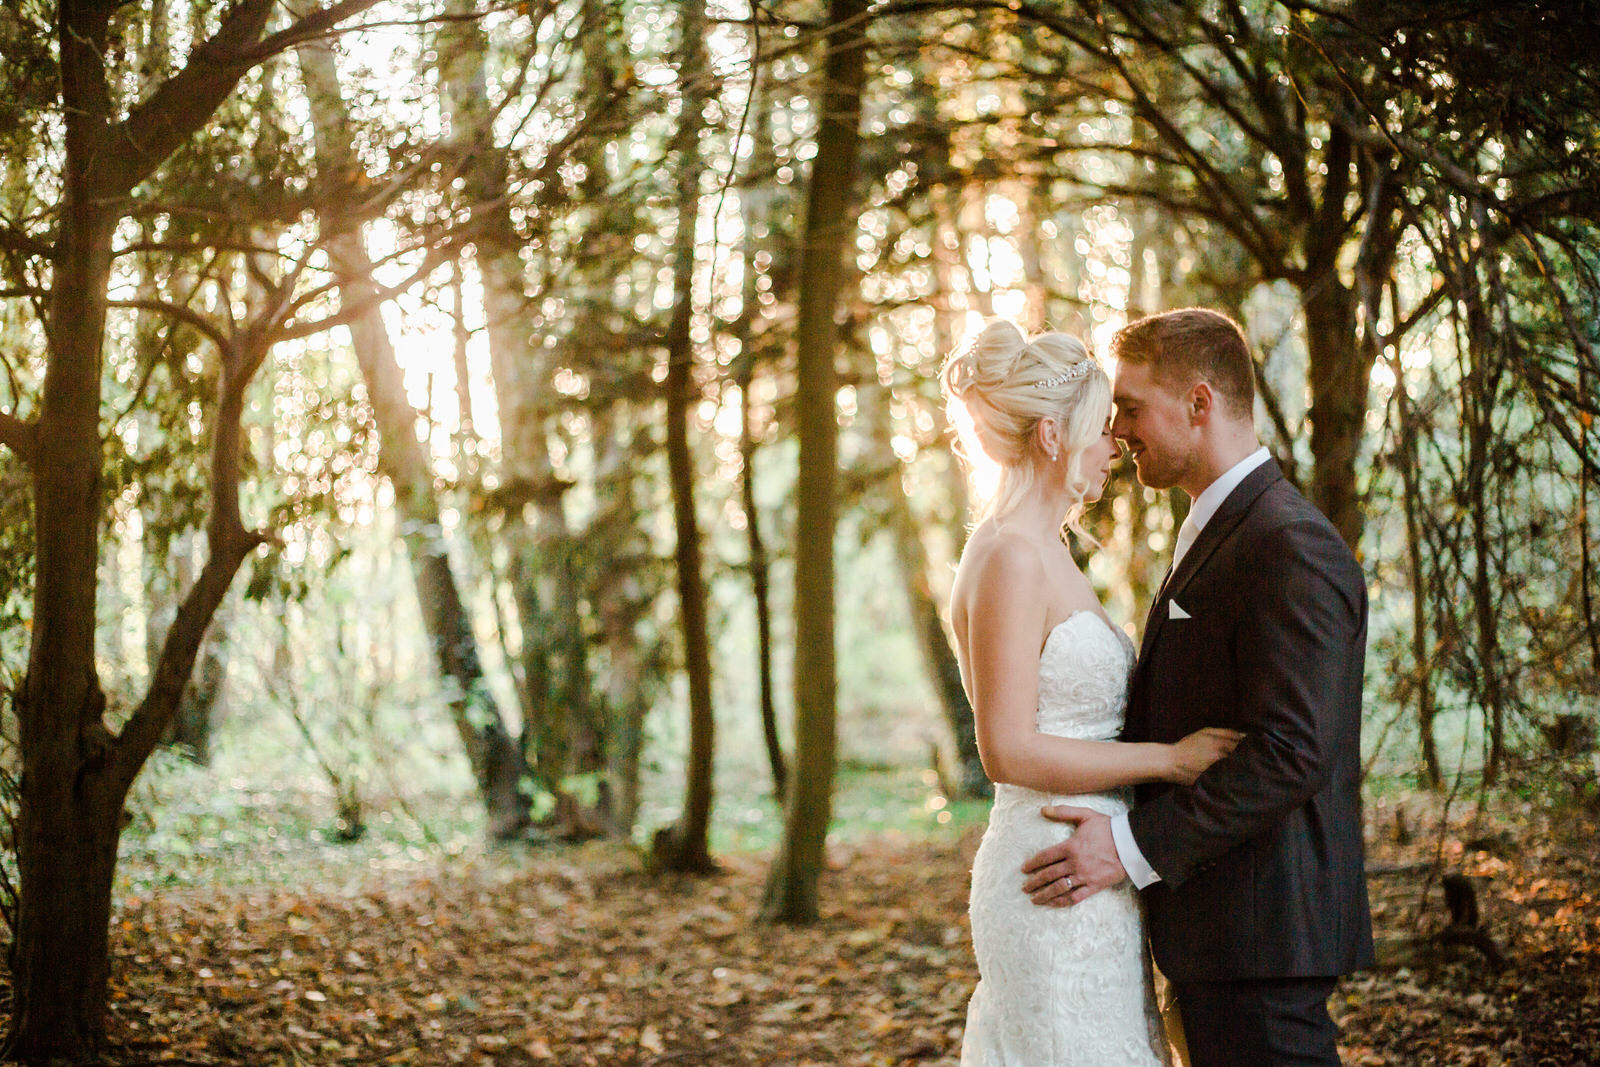 Relaxed Forest Wedding at Brandon Hall warwickshire wedding photographer based in Leamington spa